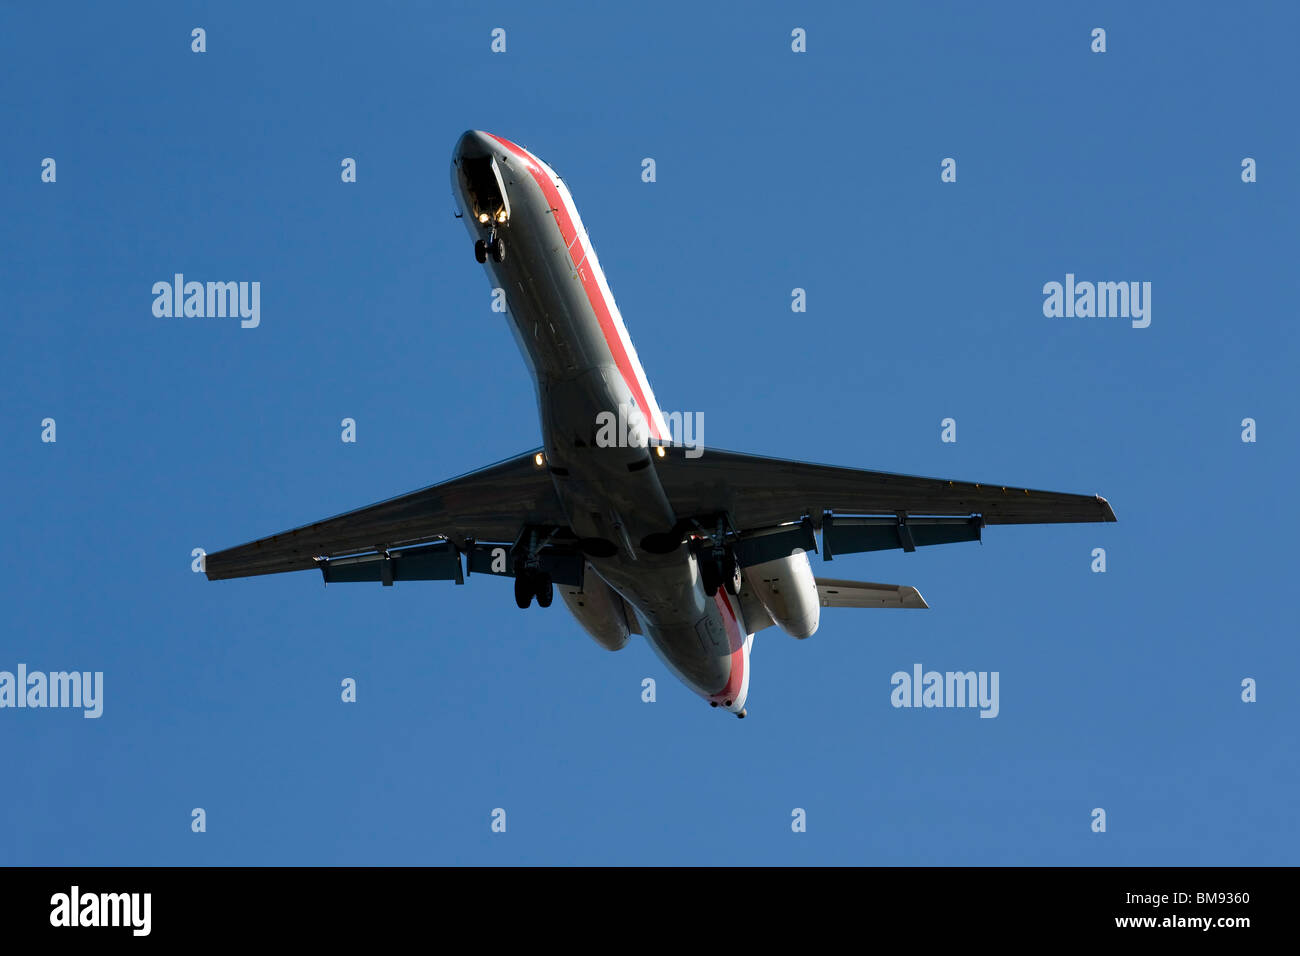 United Airlines Bombardier CRJ-700 with landing gear down. - Stock Image